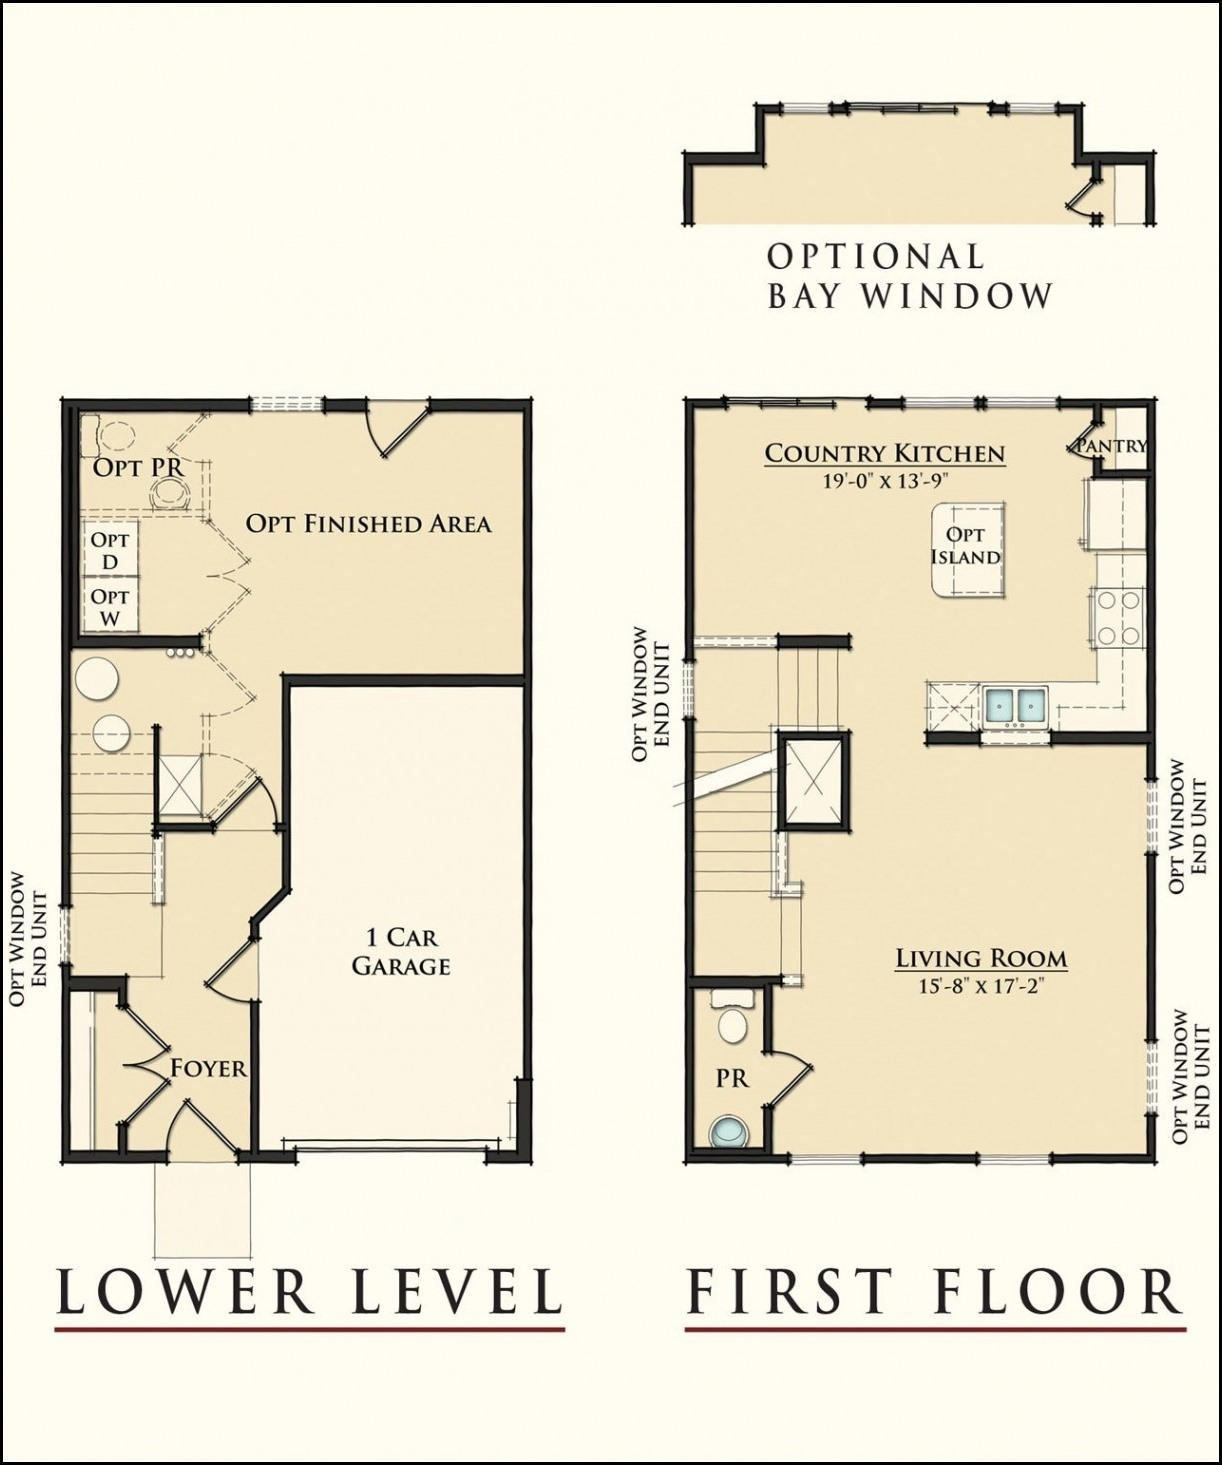 Ryan Properties Since It Is Entirely Distinctive From What The Negative Testimonials Beneath Include We Believe This Rome Residences Floor Plan